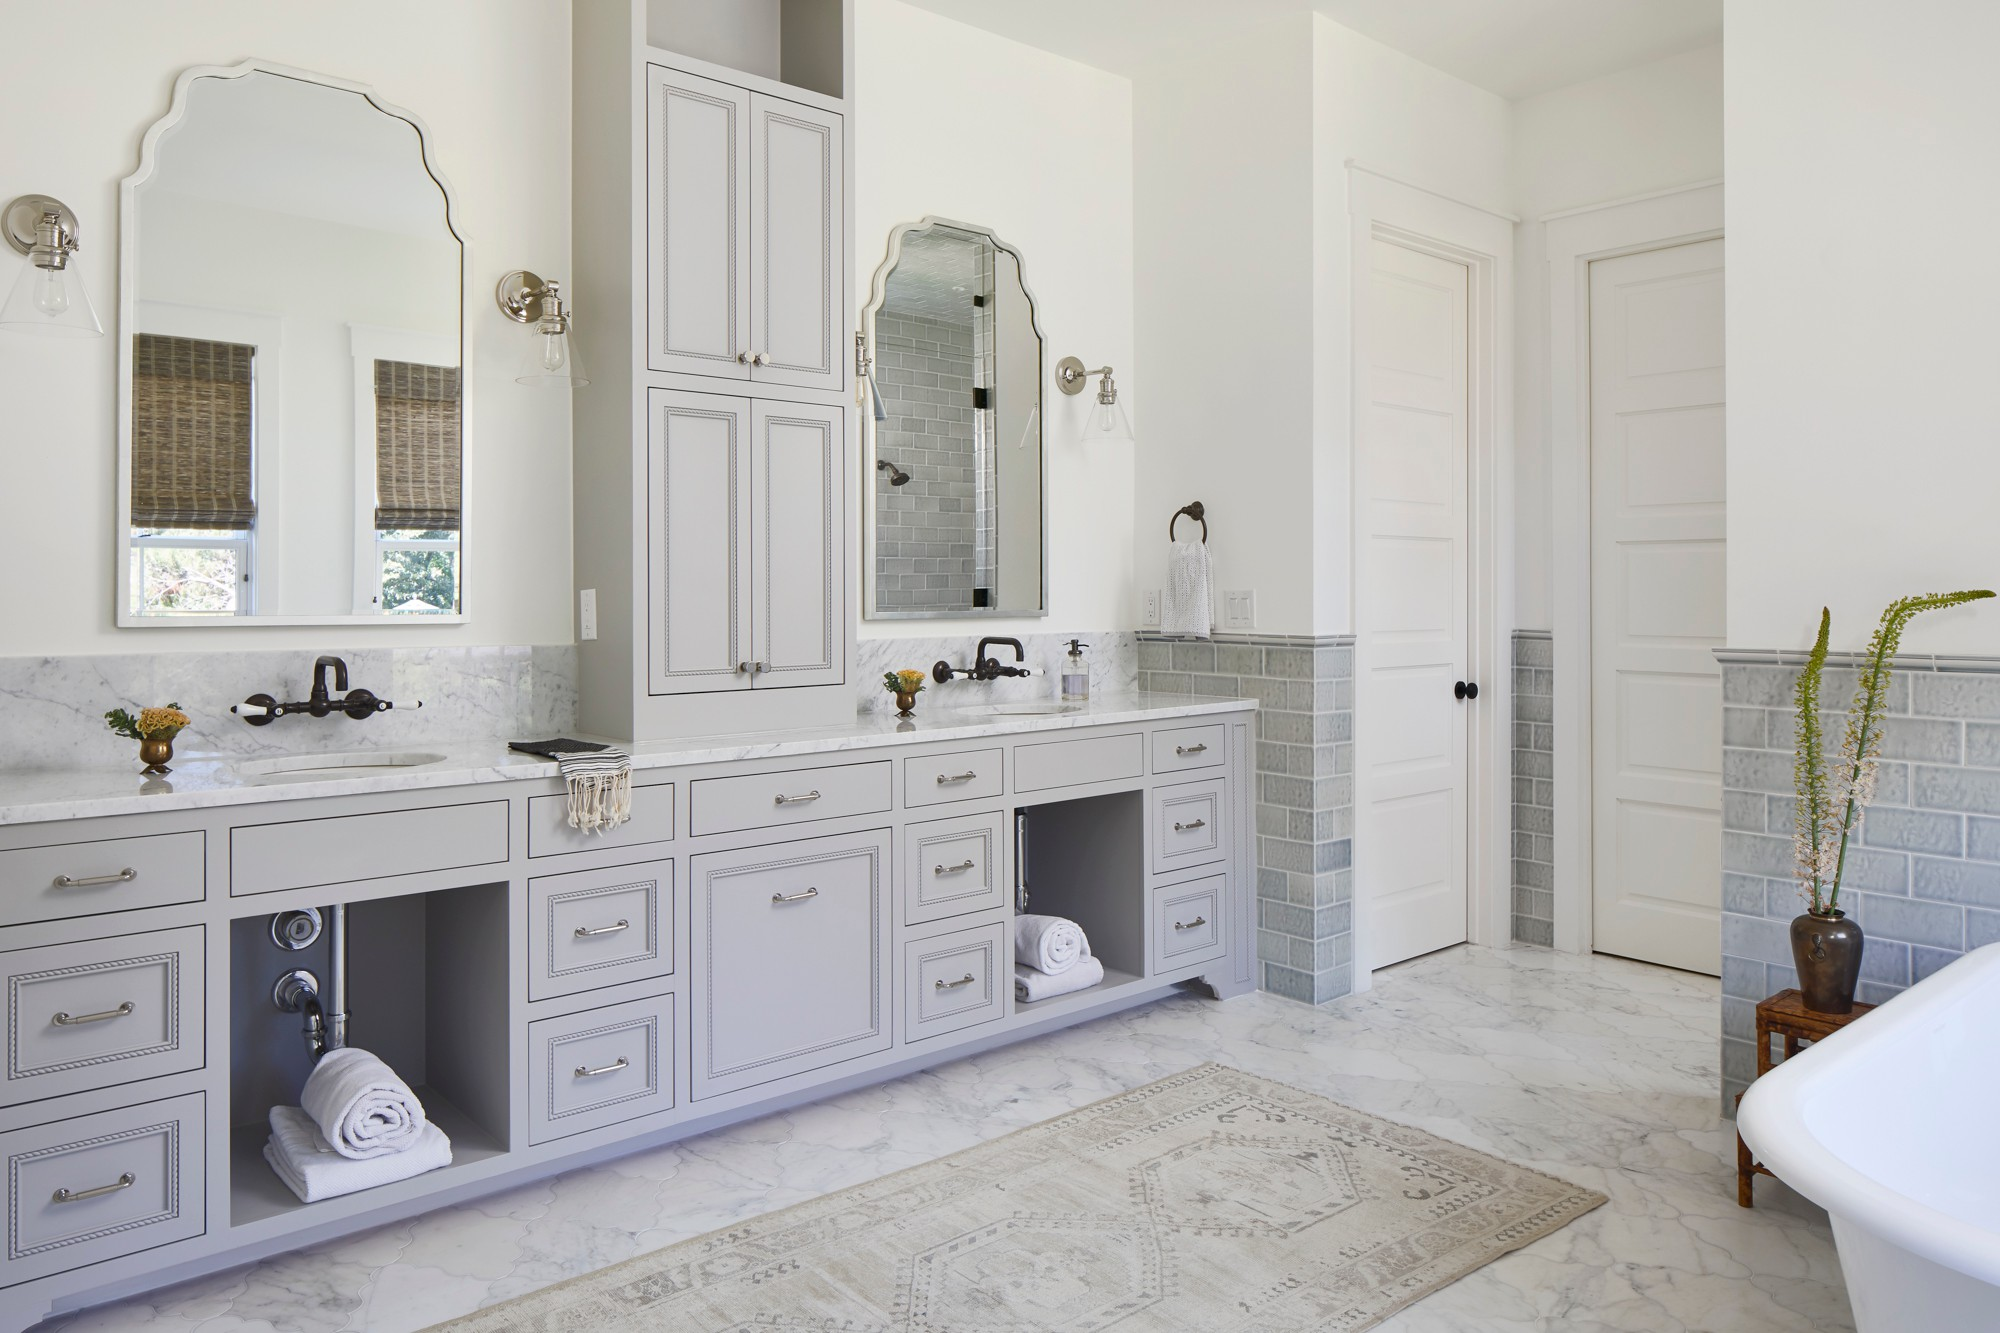 75 Beautiful Huge Master Bathroom Pictures & Ideas - January, 2021   Houzz